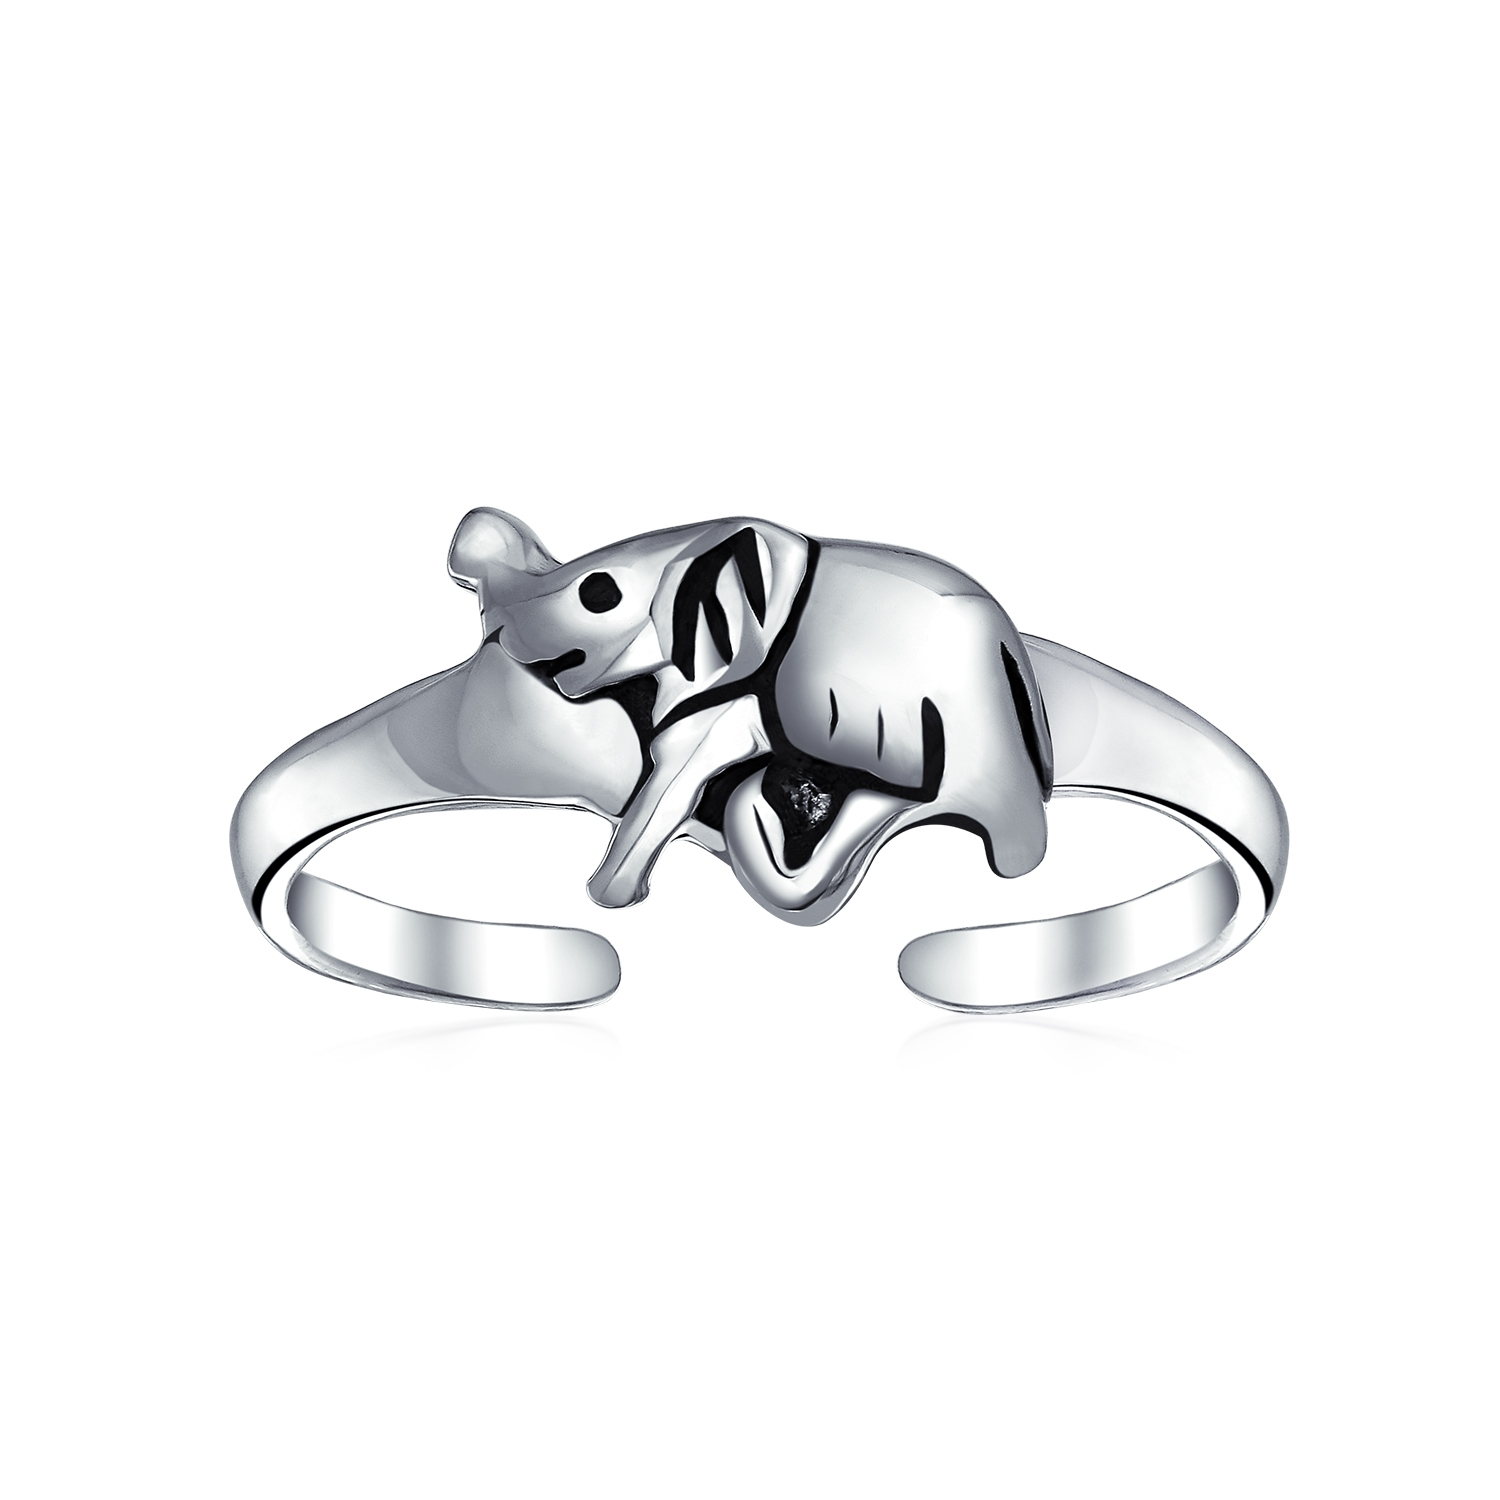 925 Sterling Silver Lucky Elephant Toe Ring Adjustable Midi Ring Within Current Elephant Toe Rings (View 6 of 15)